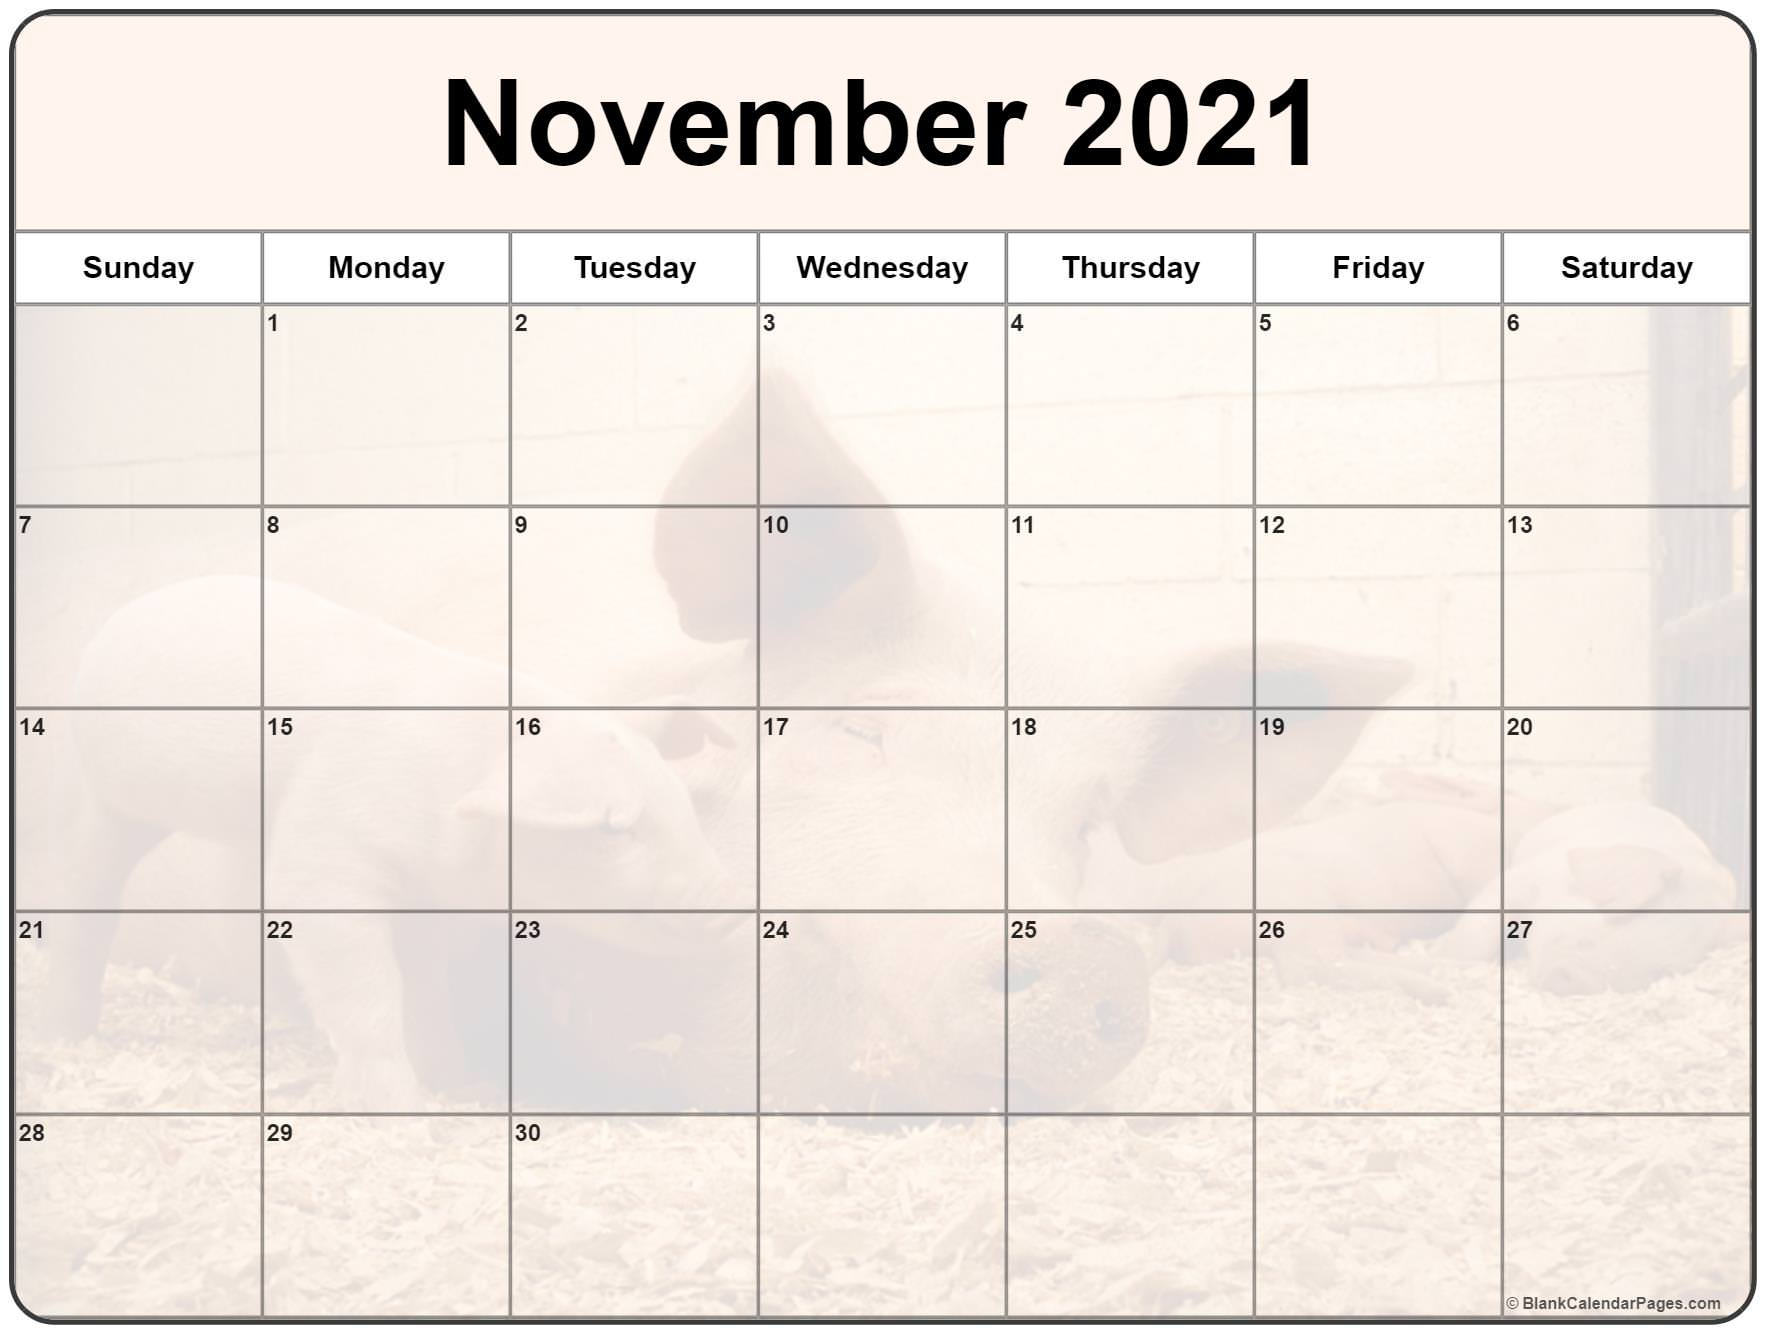 November 2021 picture calendar with cute piglet filters